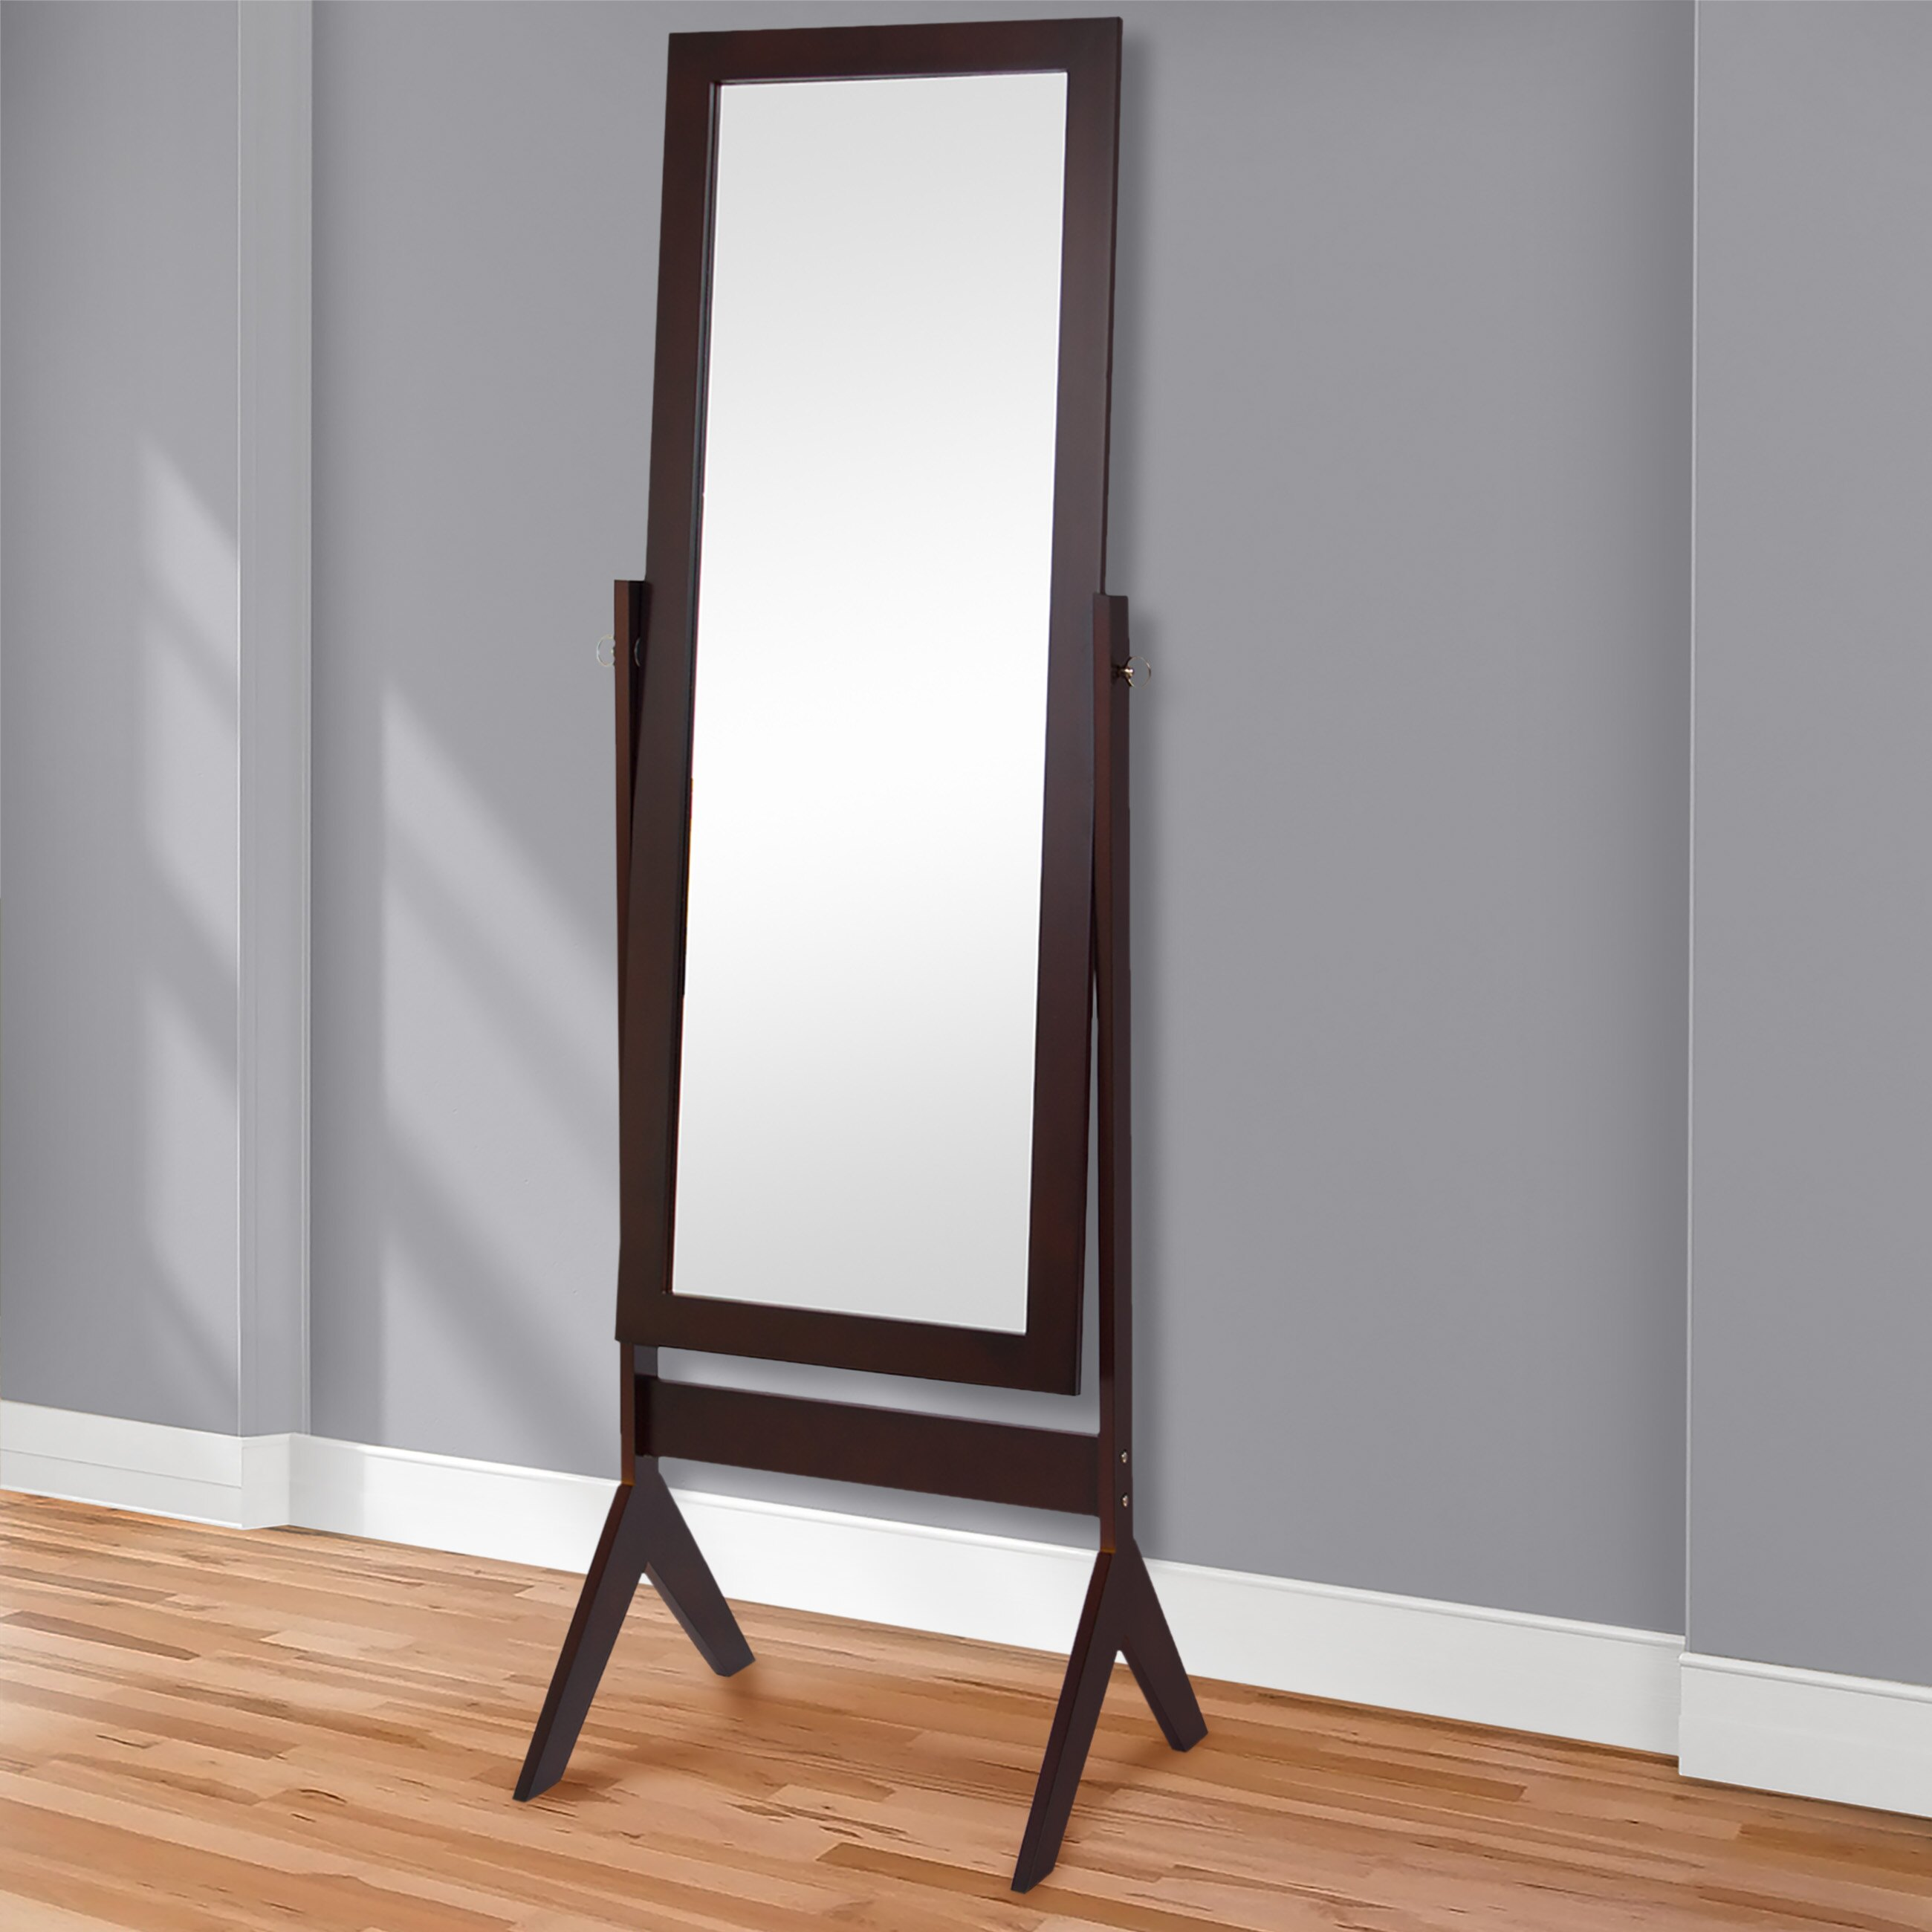 Best Choice Products Cheval Floor Mirror Bedroom Home Furniture- Espresso Brown 1